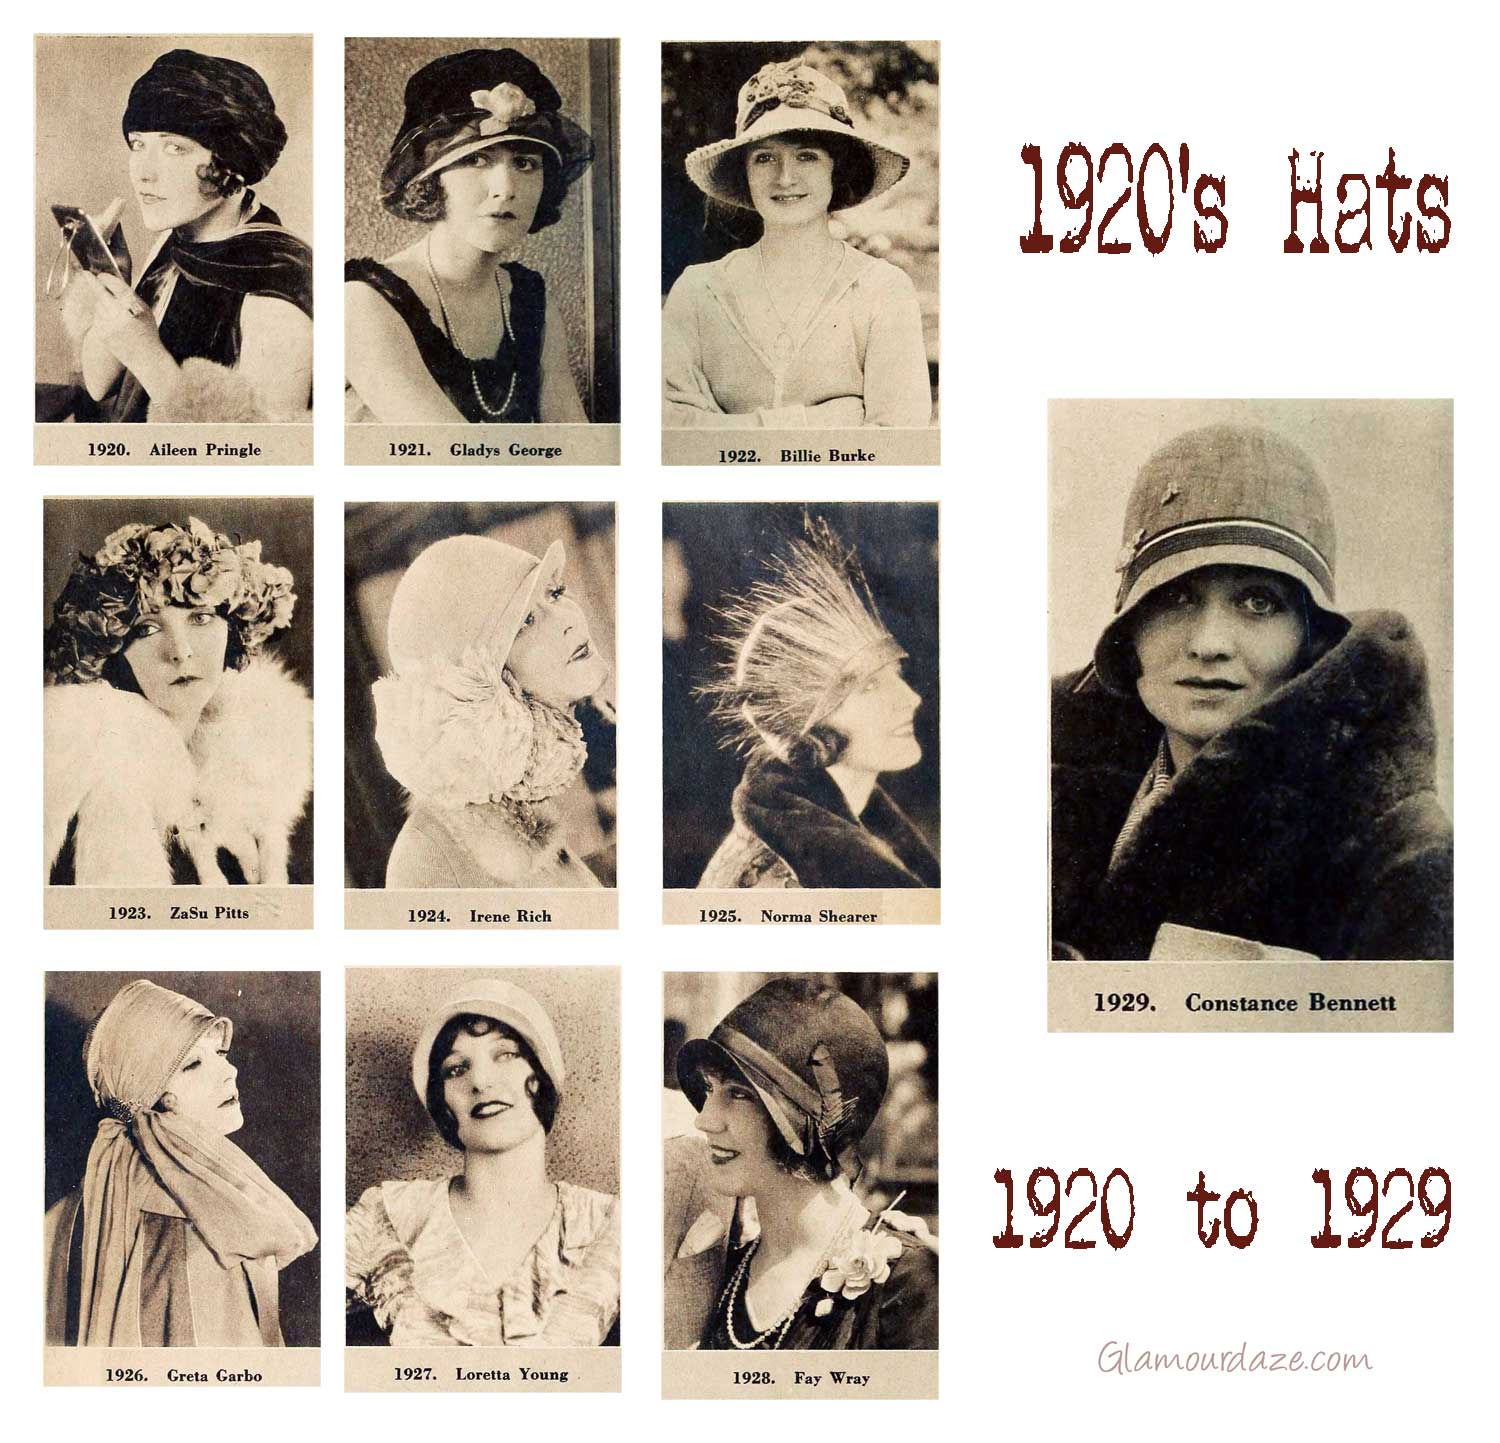 a 1920s cloche hat timeline  u2013 1920 to 1929